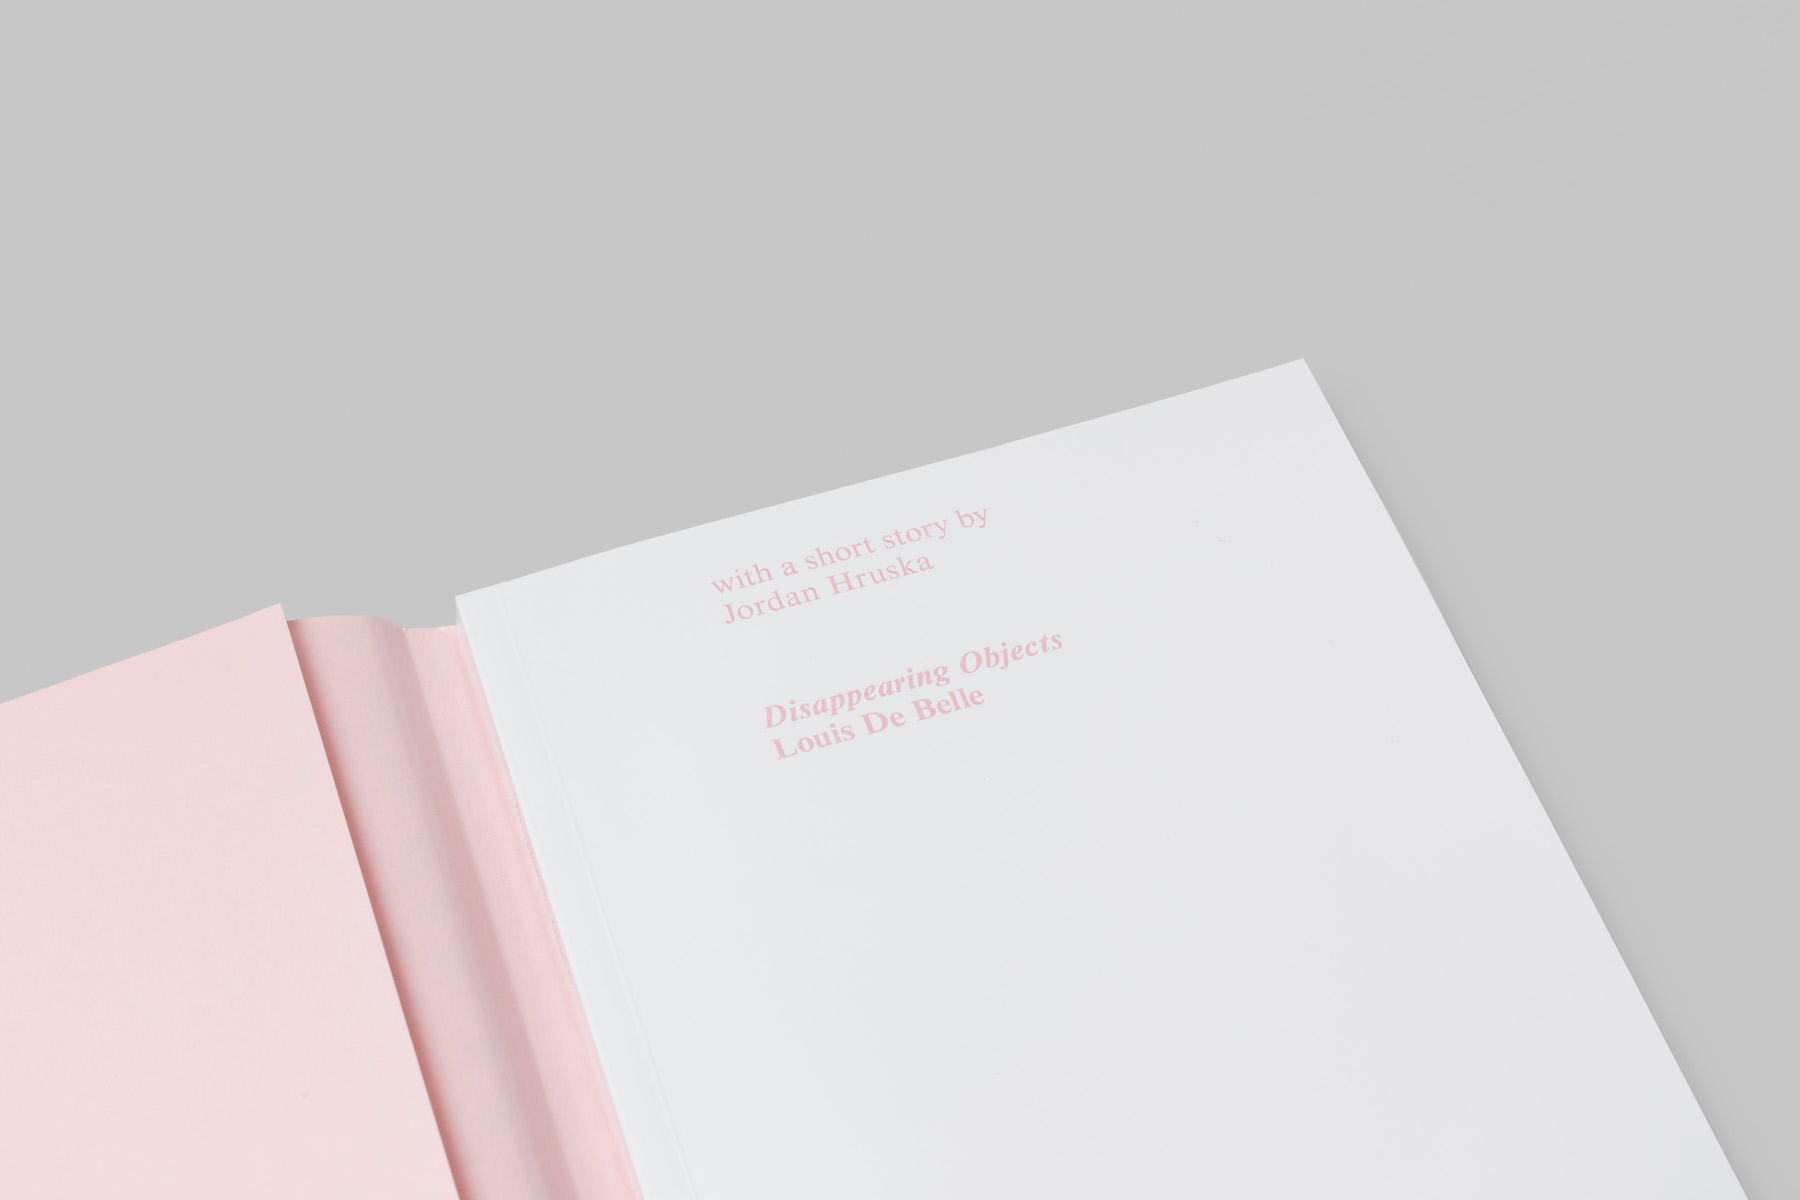 LOUIS DE BELLE Disappearing Objects Book